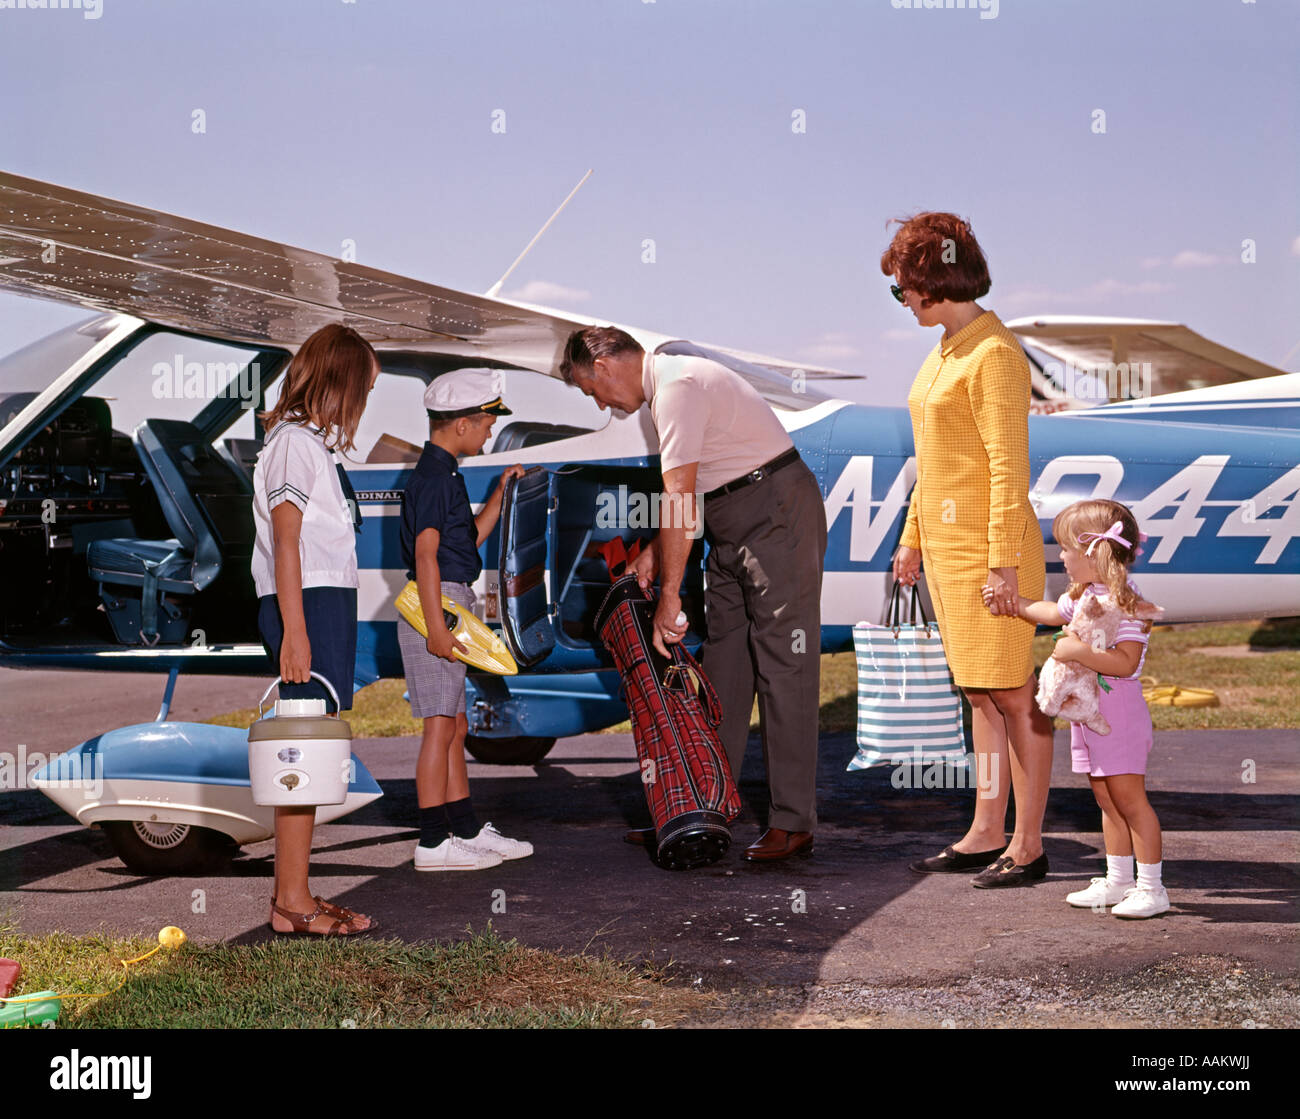 1960s FAMILY LOADING LUGGAGE ONTO PRIVATE PROP AIRPLANE PLANE TRAVEL VACATION MOTHER FATHER CHILDREN - Stock Image